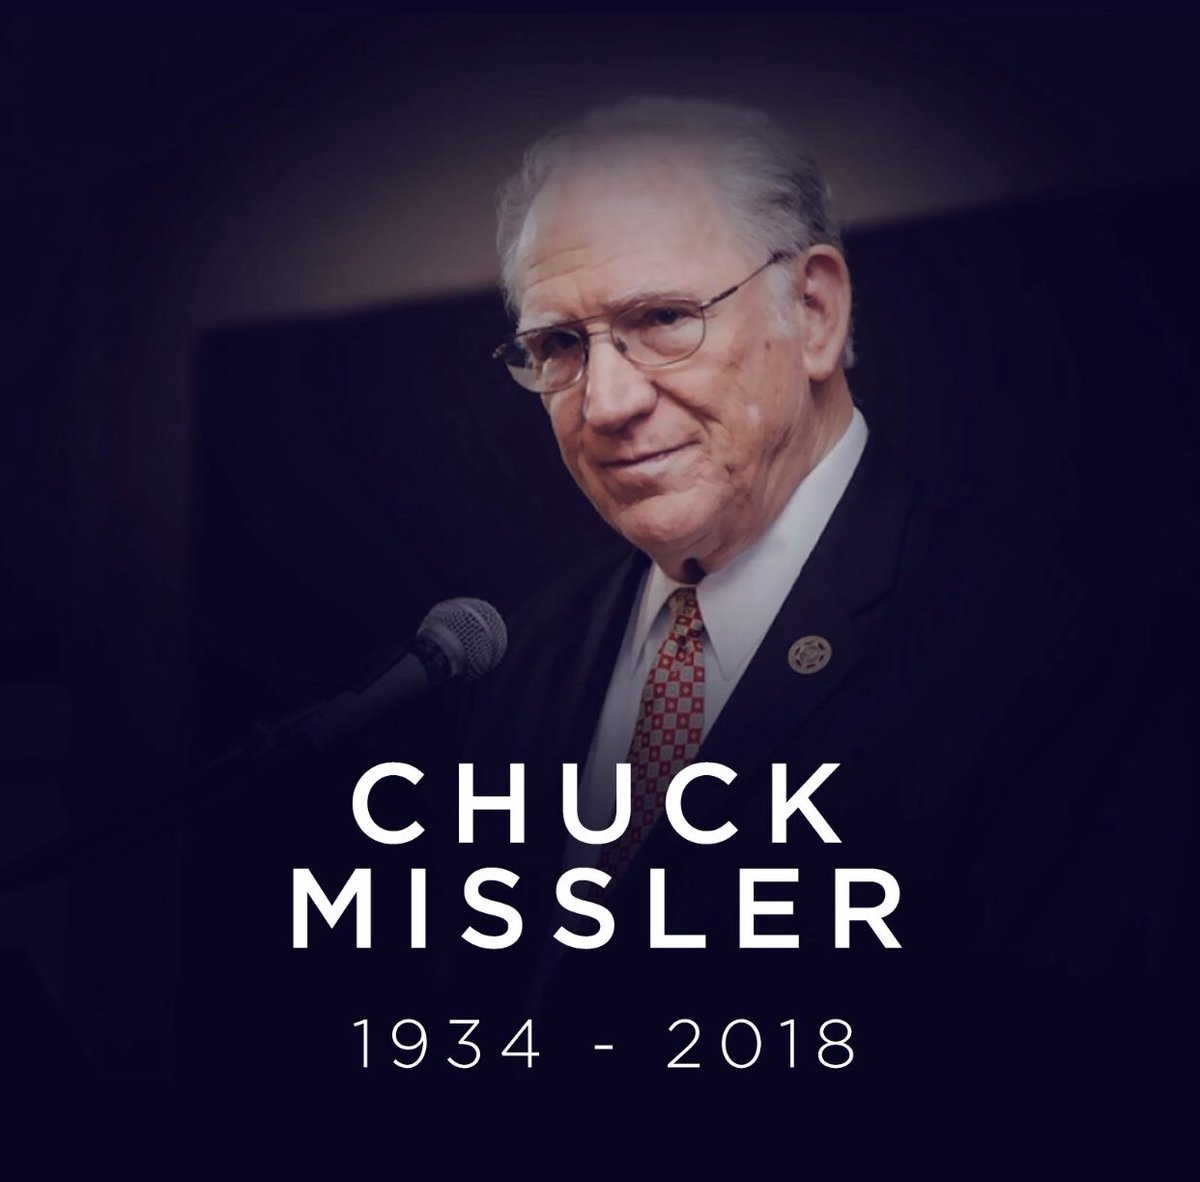 So..I'm new to smartphones and Twitter.Since Neil's death I found people on different 'Rush' platforms that make my Twitter experience pleasant.I wanted to start posting things on Faith.Chuck Missler is another big influence on me.He to has passed.He has mind blowing insightspic.twitter.com/SVjmzTZv7L